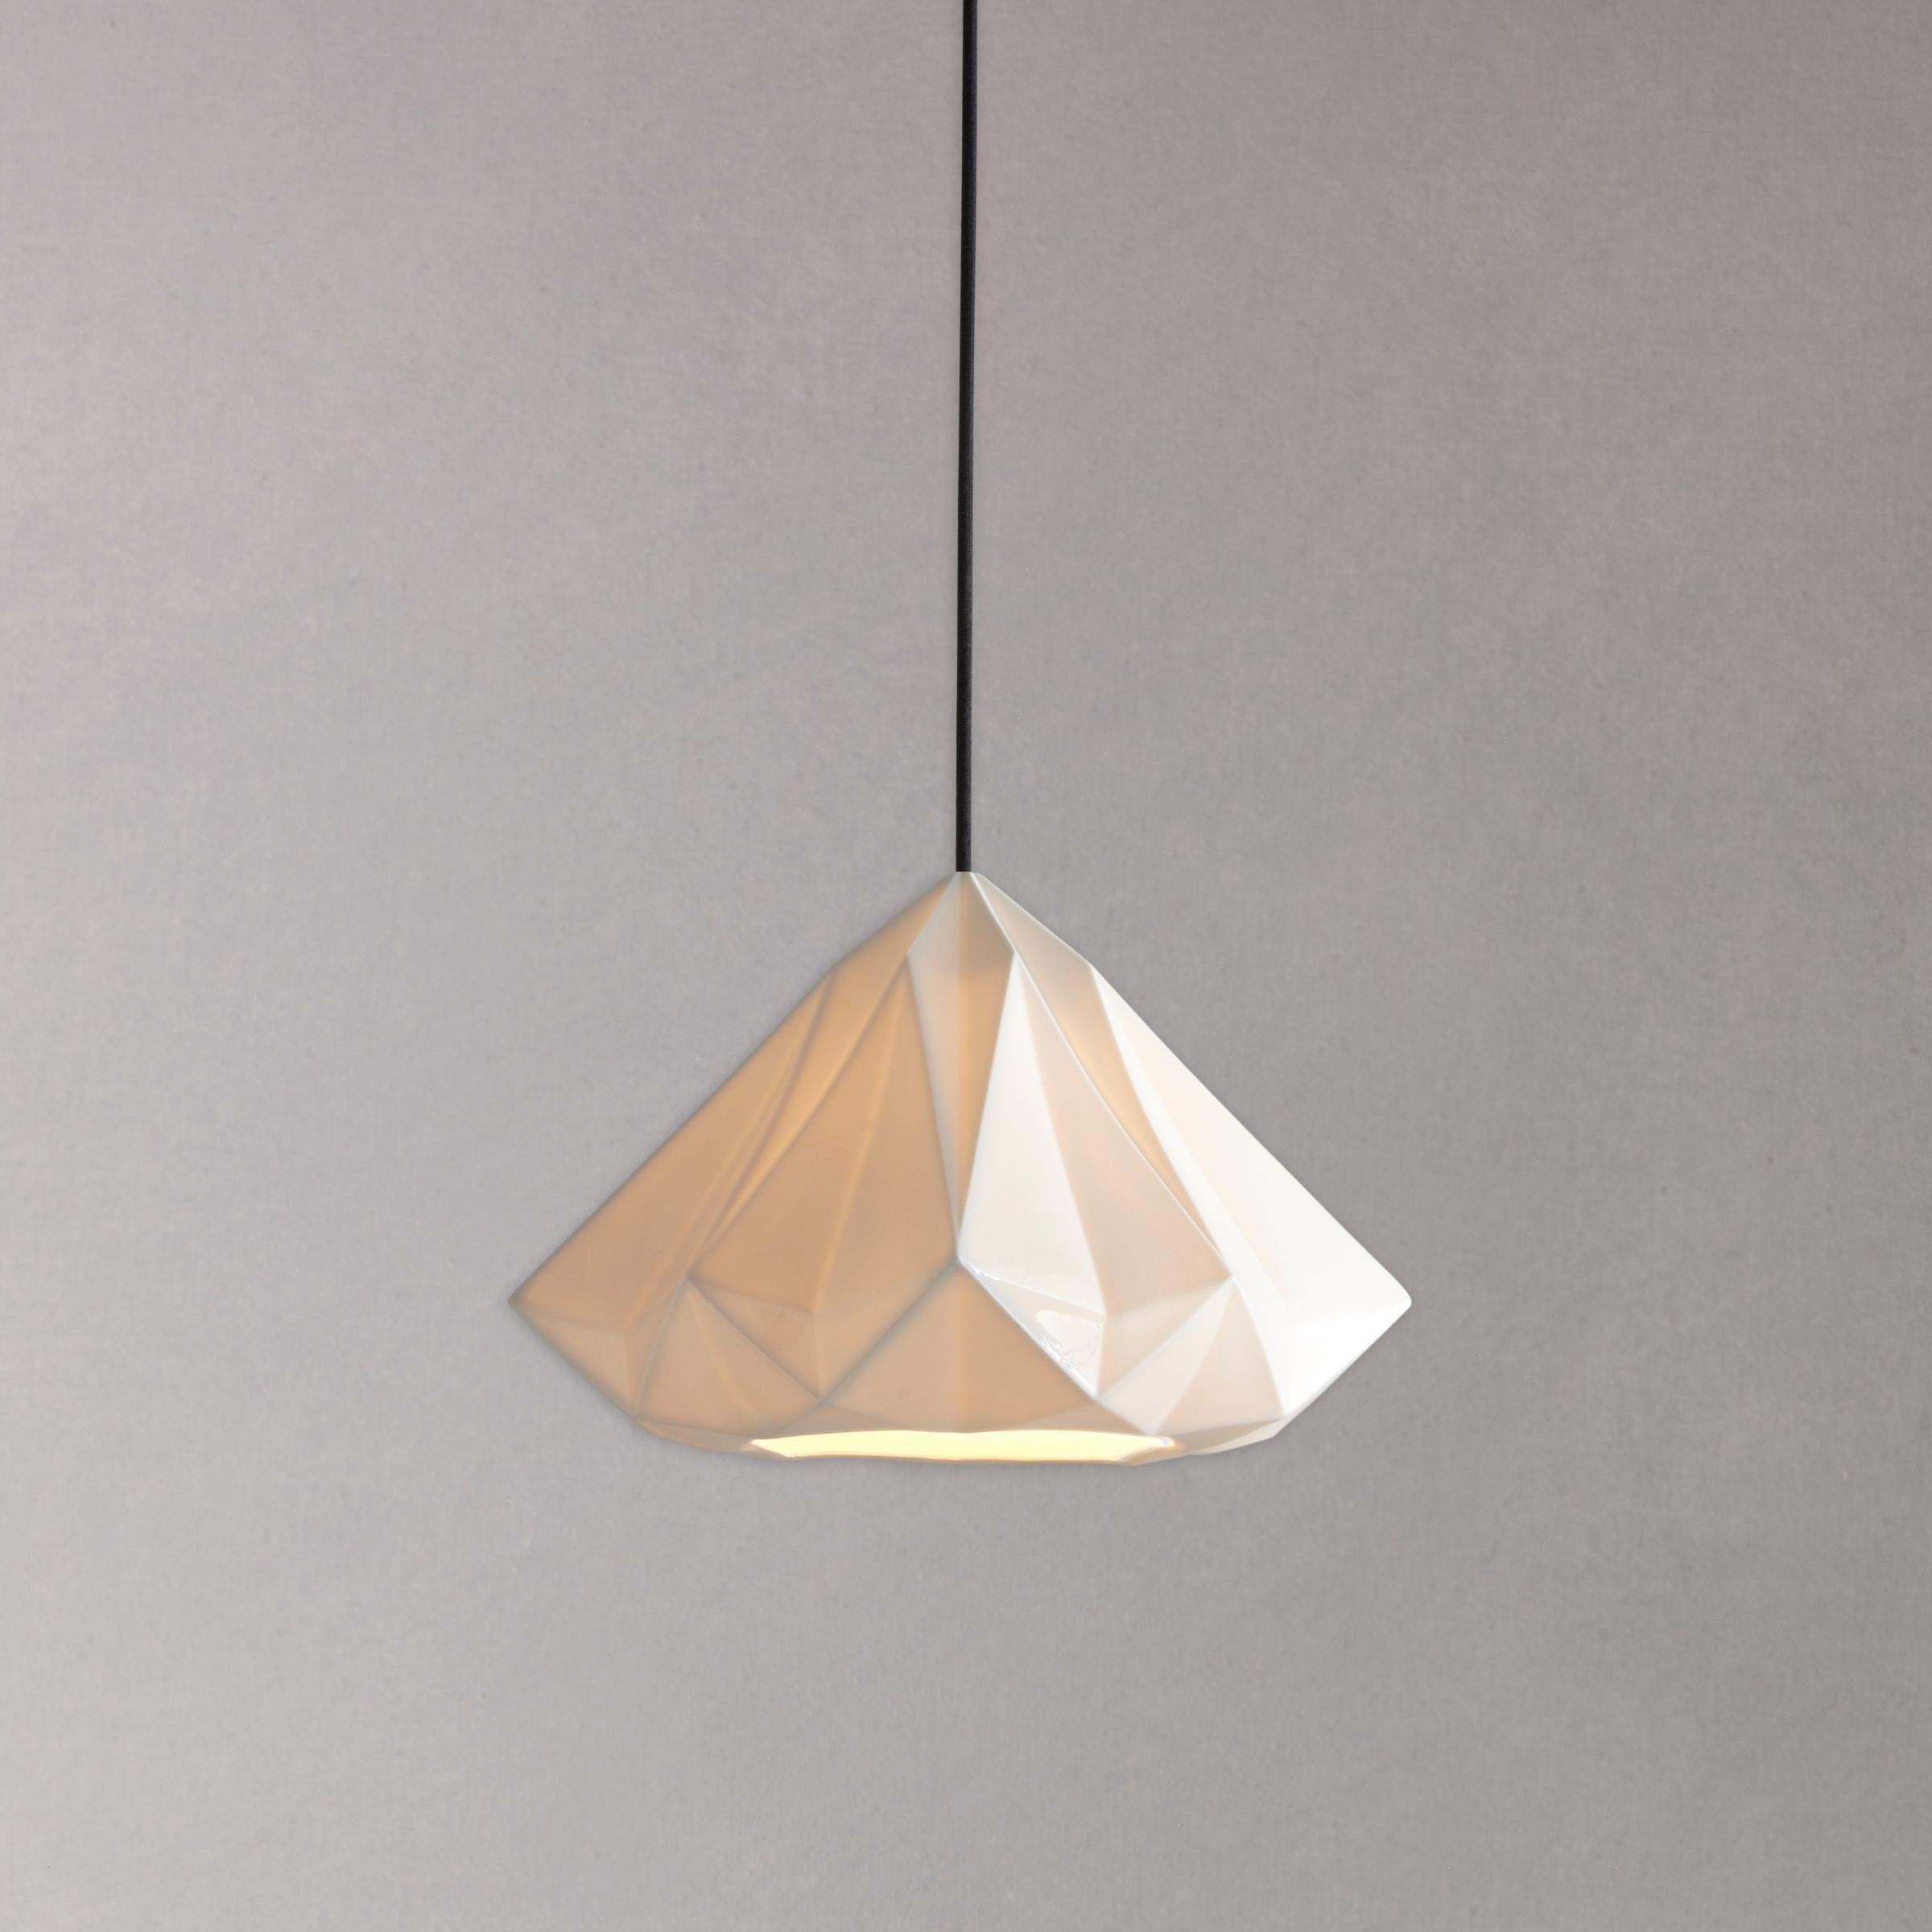 Original BTC Original BTC Hatton 2 Medium Pendant Light, 35cm